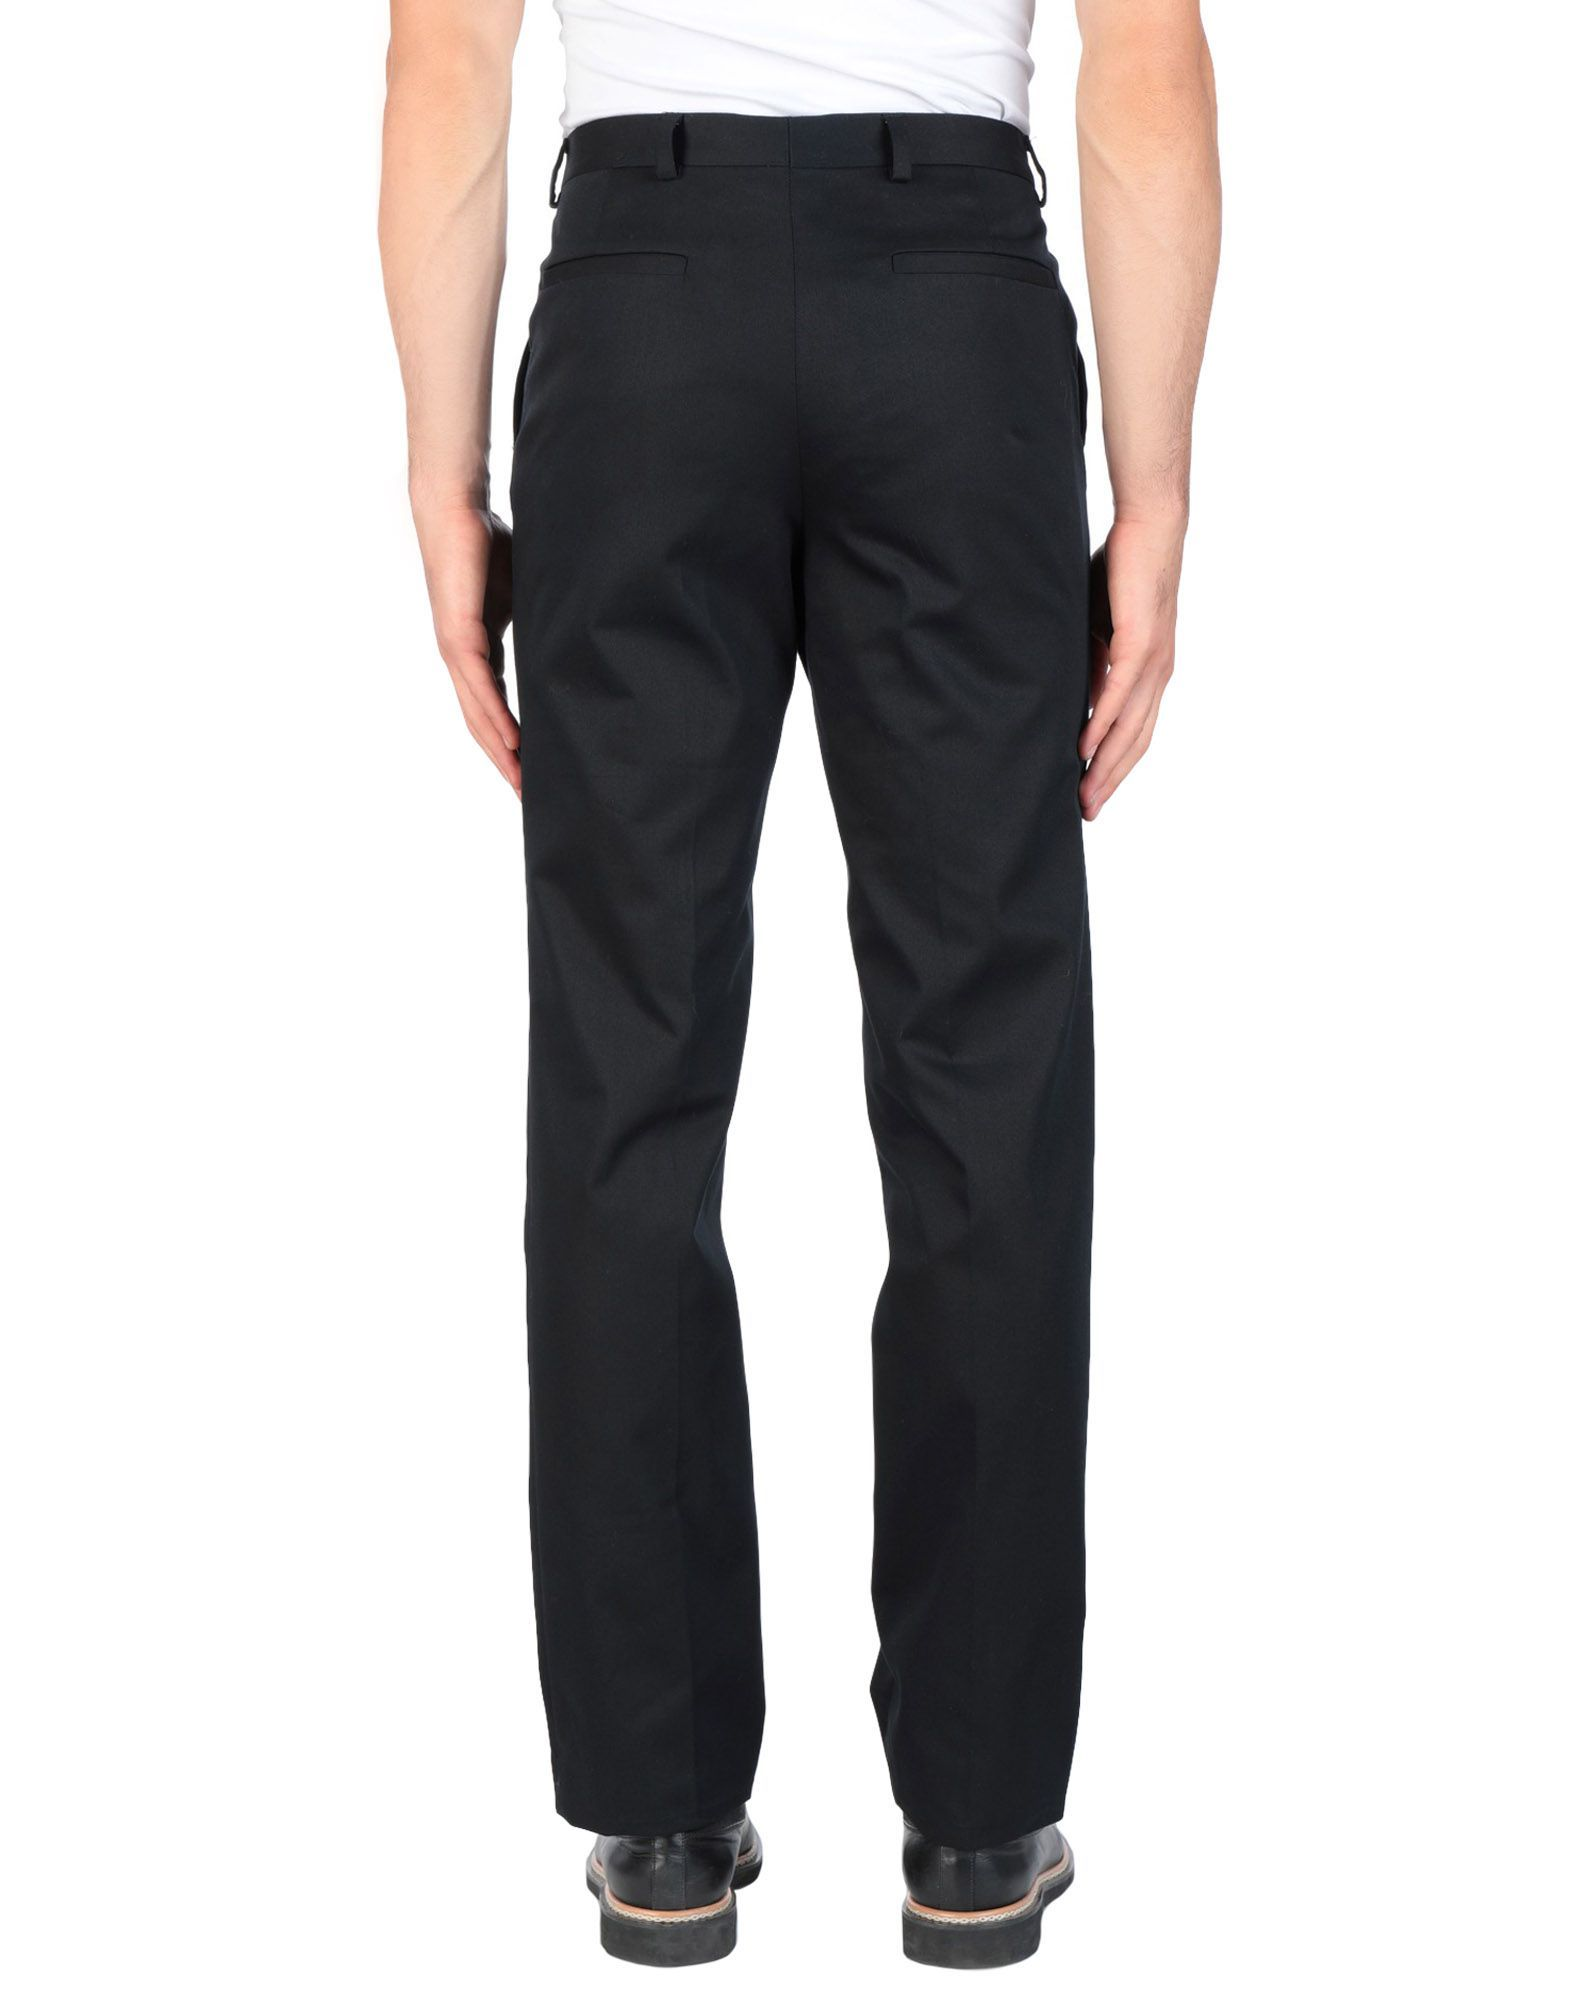 Givenchy Black Cotton Trousers